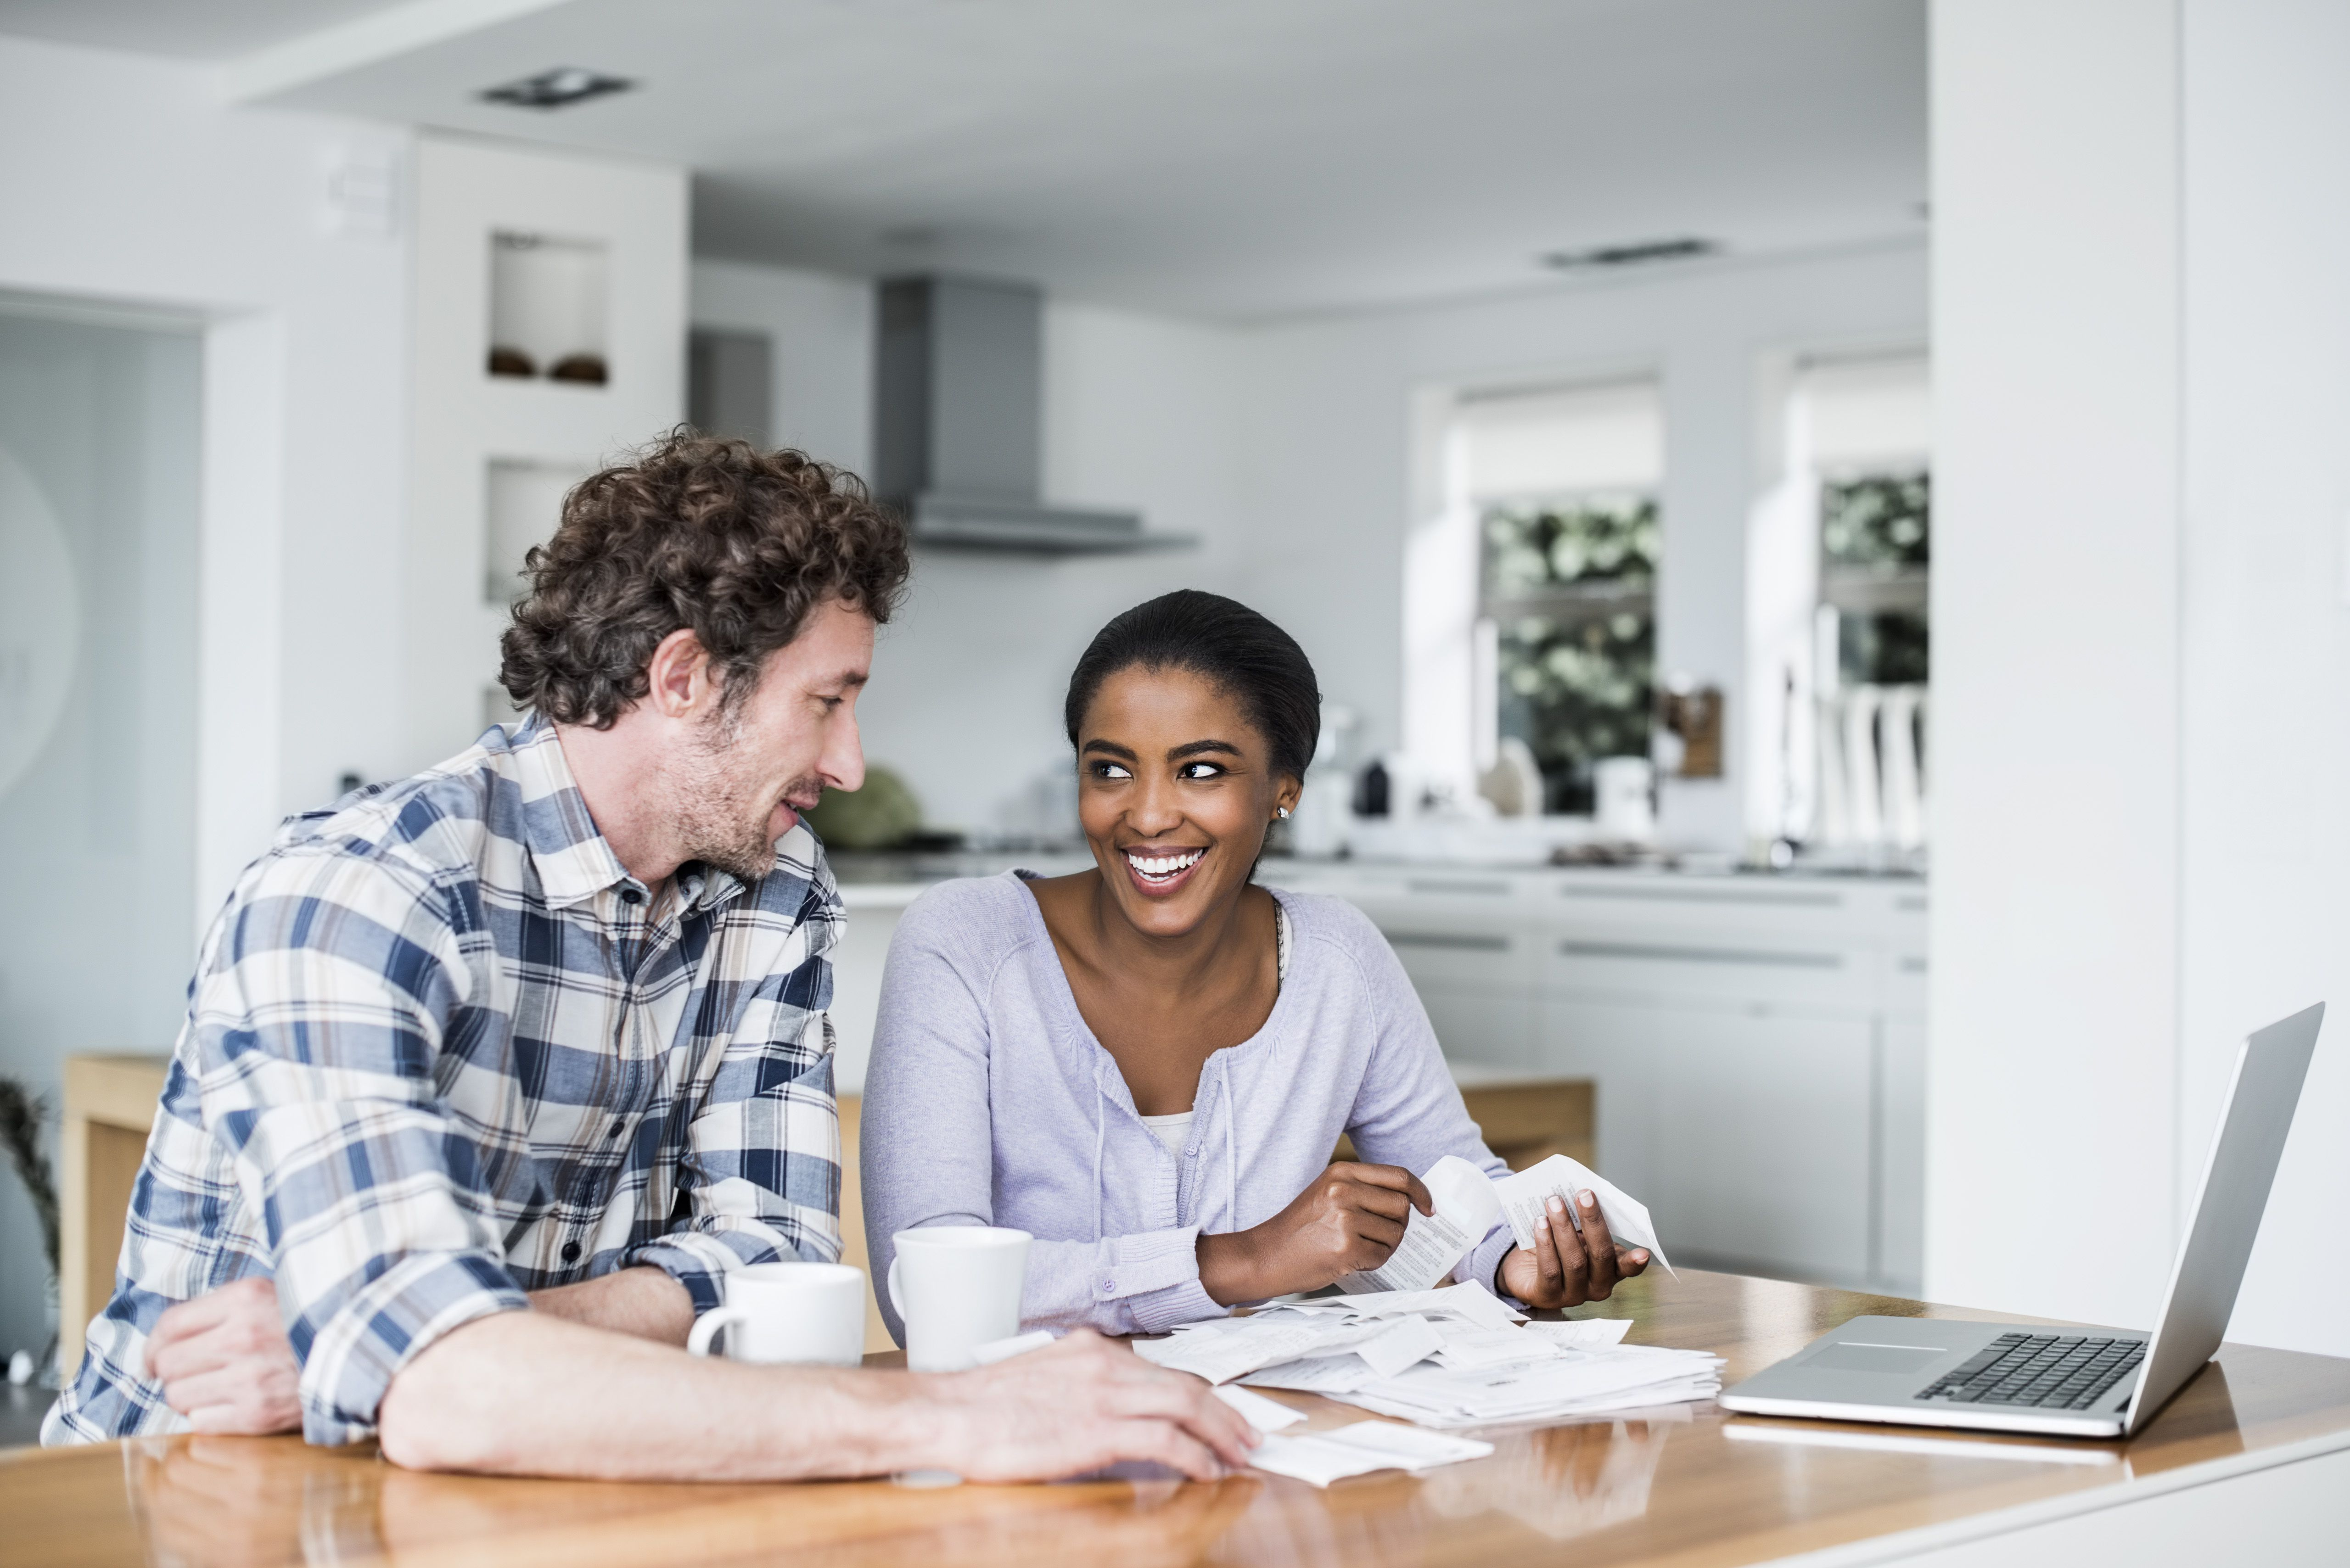 3 Strategies for Commingling Money When Engaged or Moving In Together